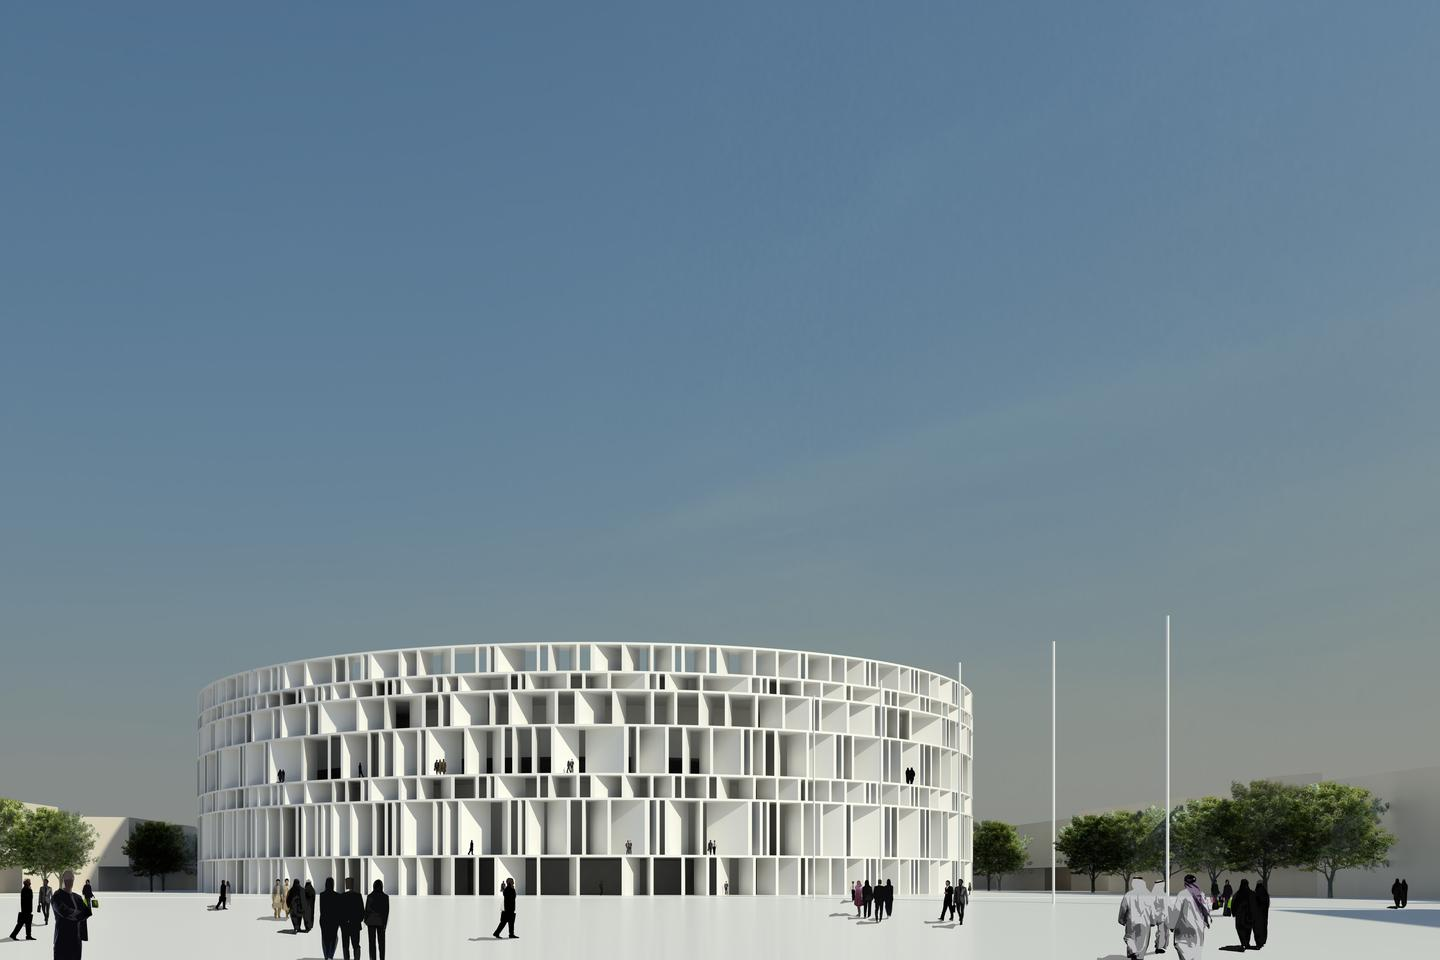 The Council of Representatives building at the heart of the design (Image: Assemblage)